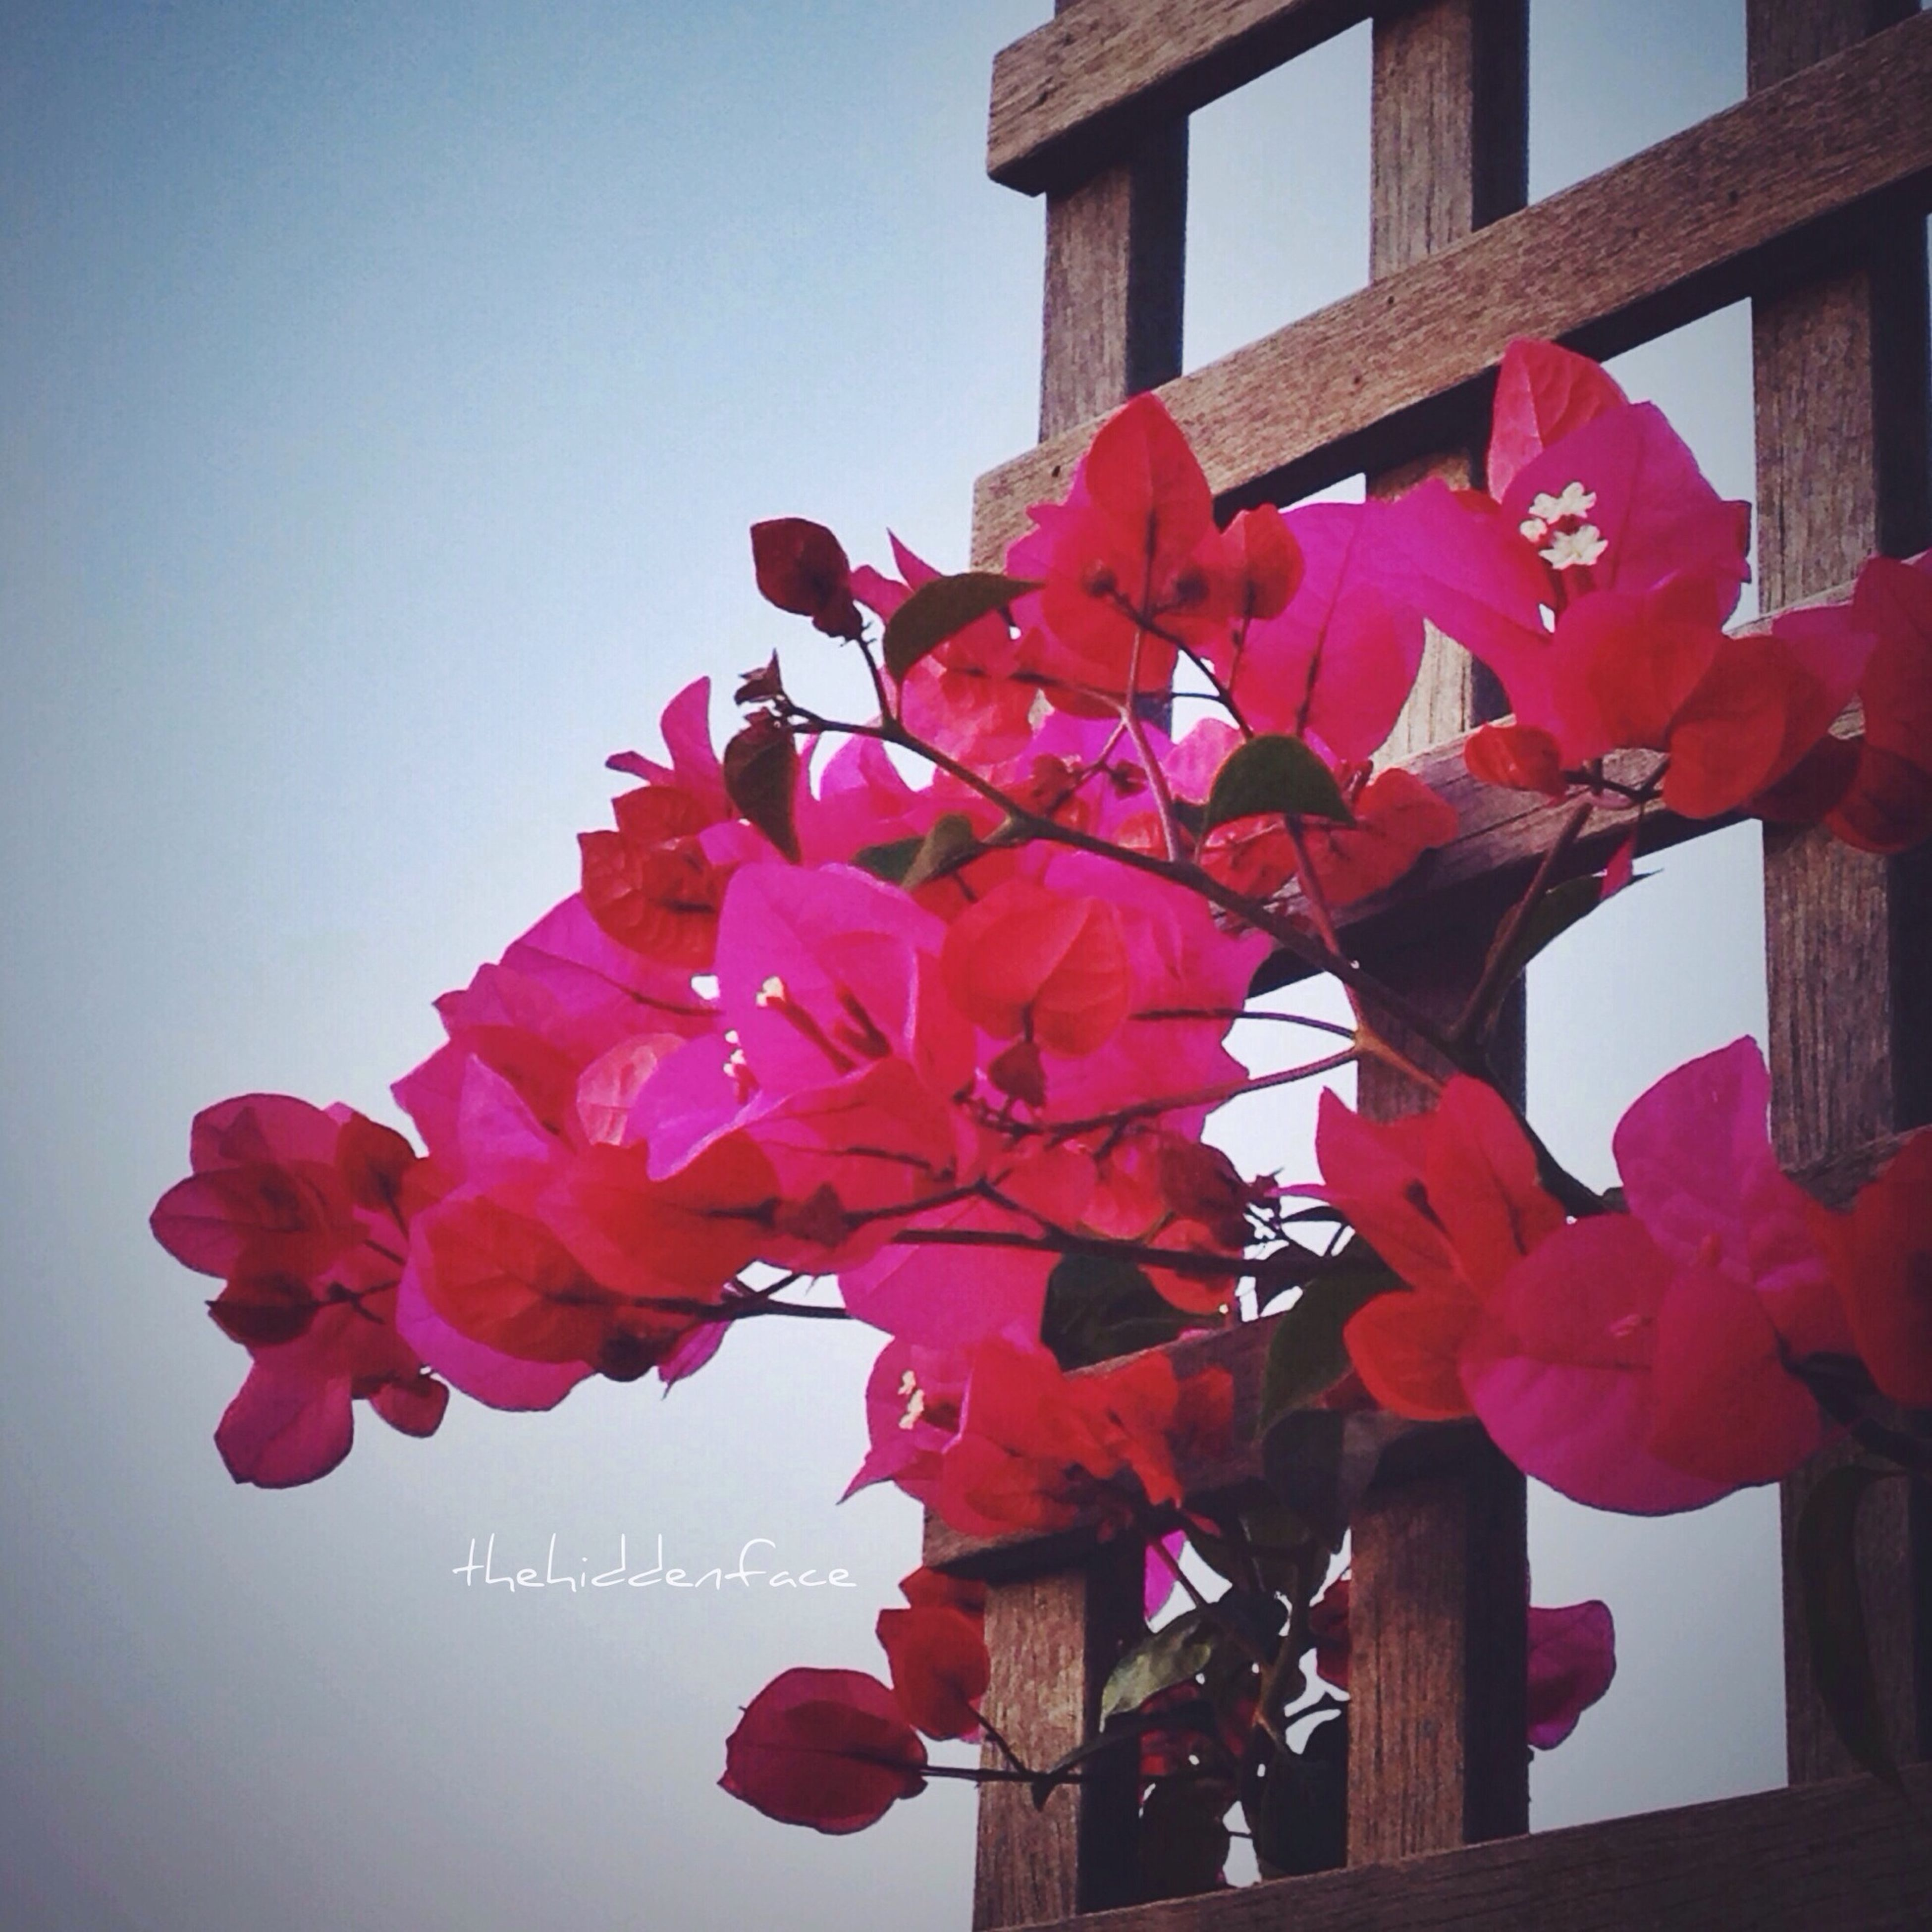 flower, freshness, fragility, low angle view, petal, built structure, growth, architecture, red, clear sky, building exterior, pink color, beauty in nature, blooming, flower head, nature, blossom, in bloom, sky, day